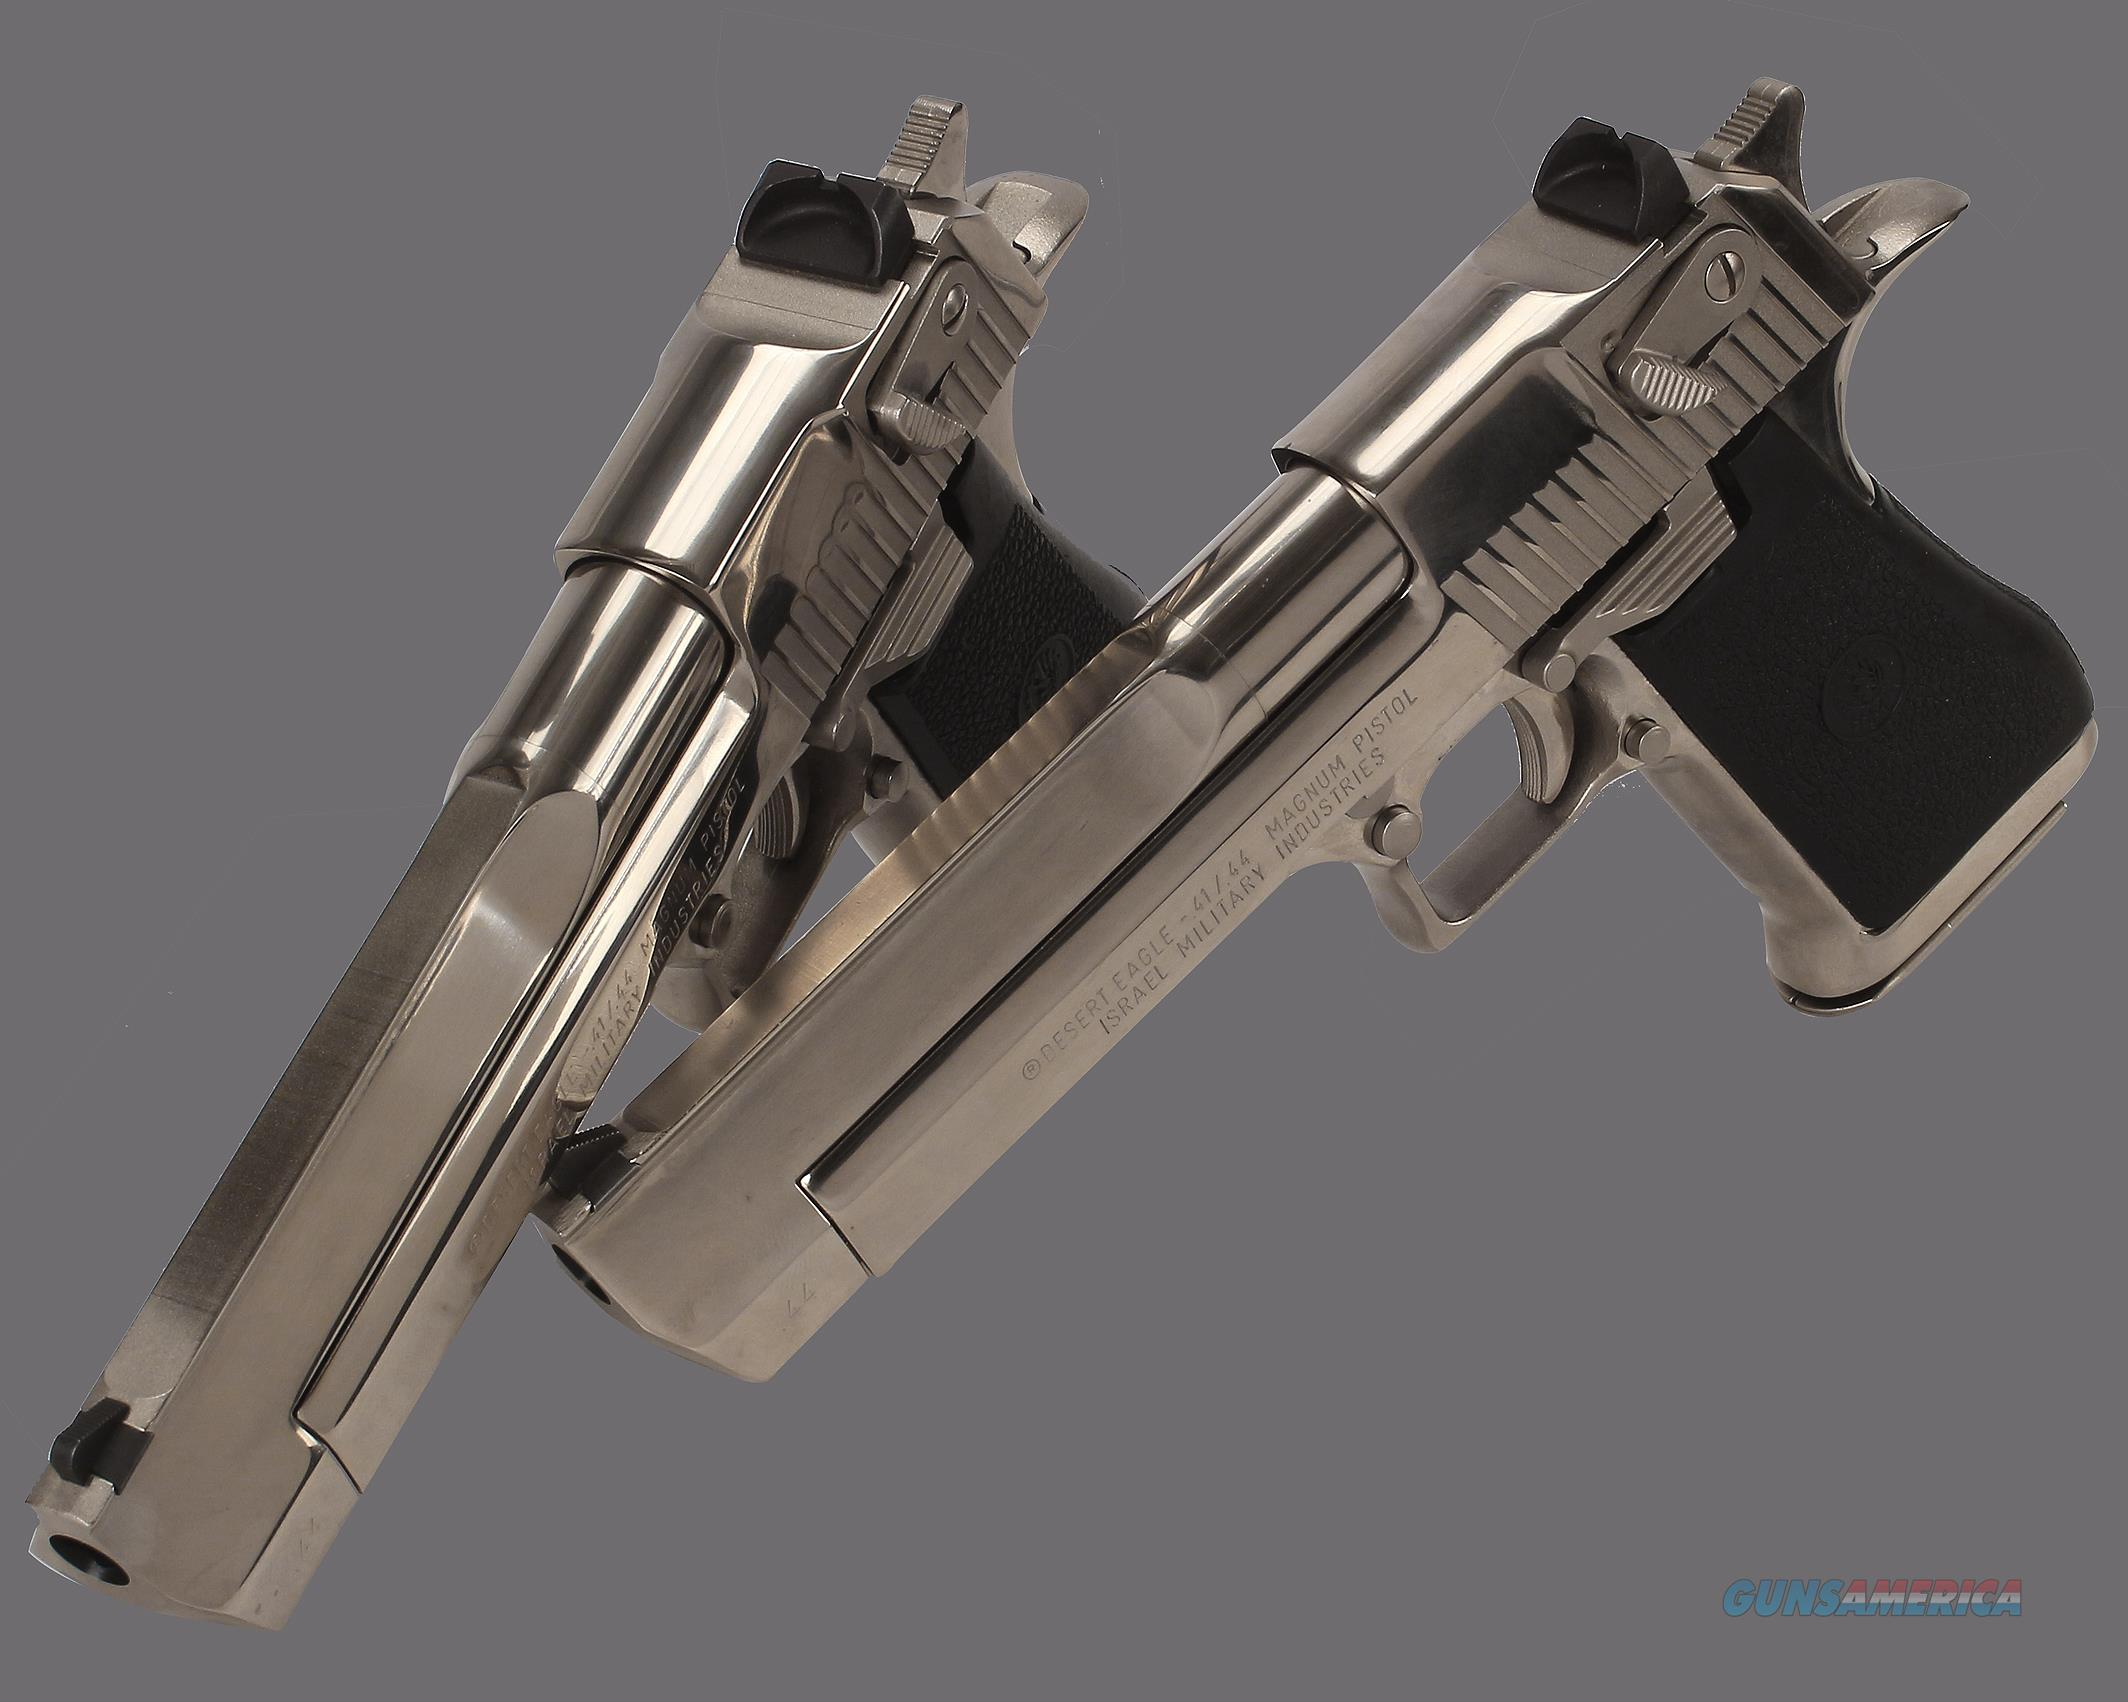 Magnum Research MK 7 Desert Eagle 44Mag Pistols  Guns > Pistols > Magnum Research Pistols